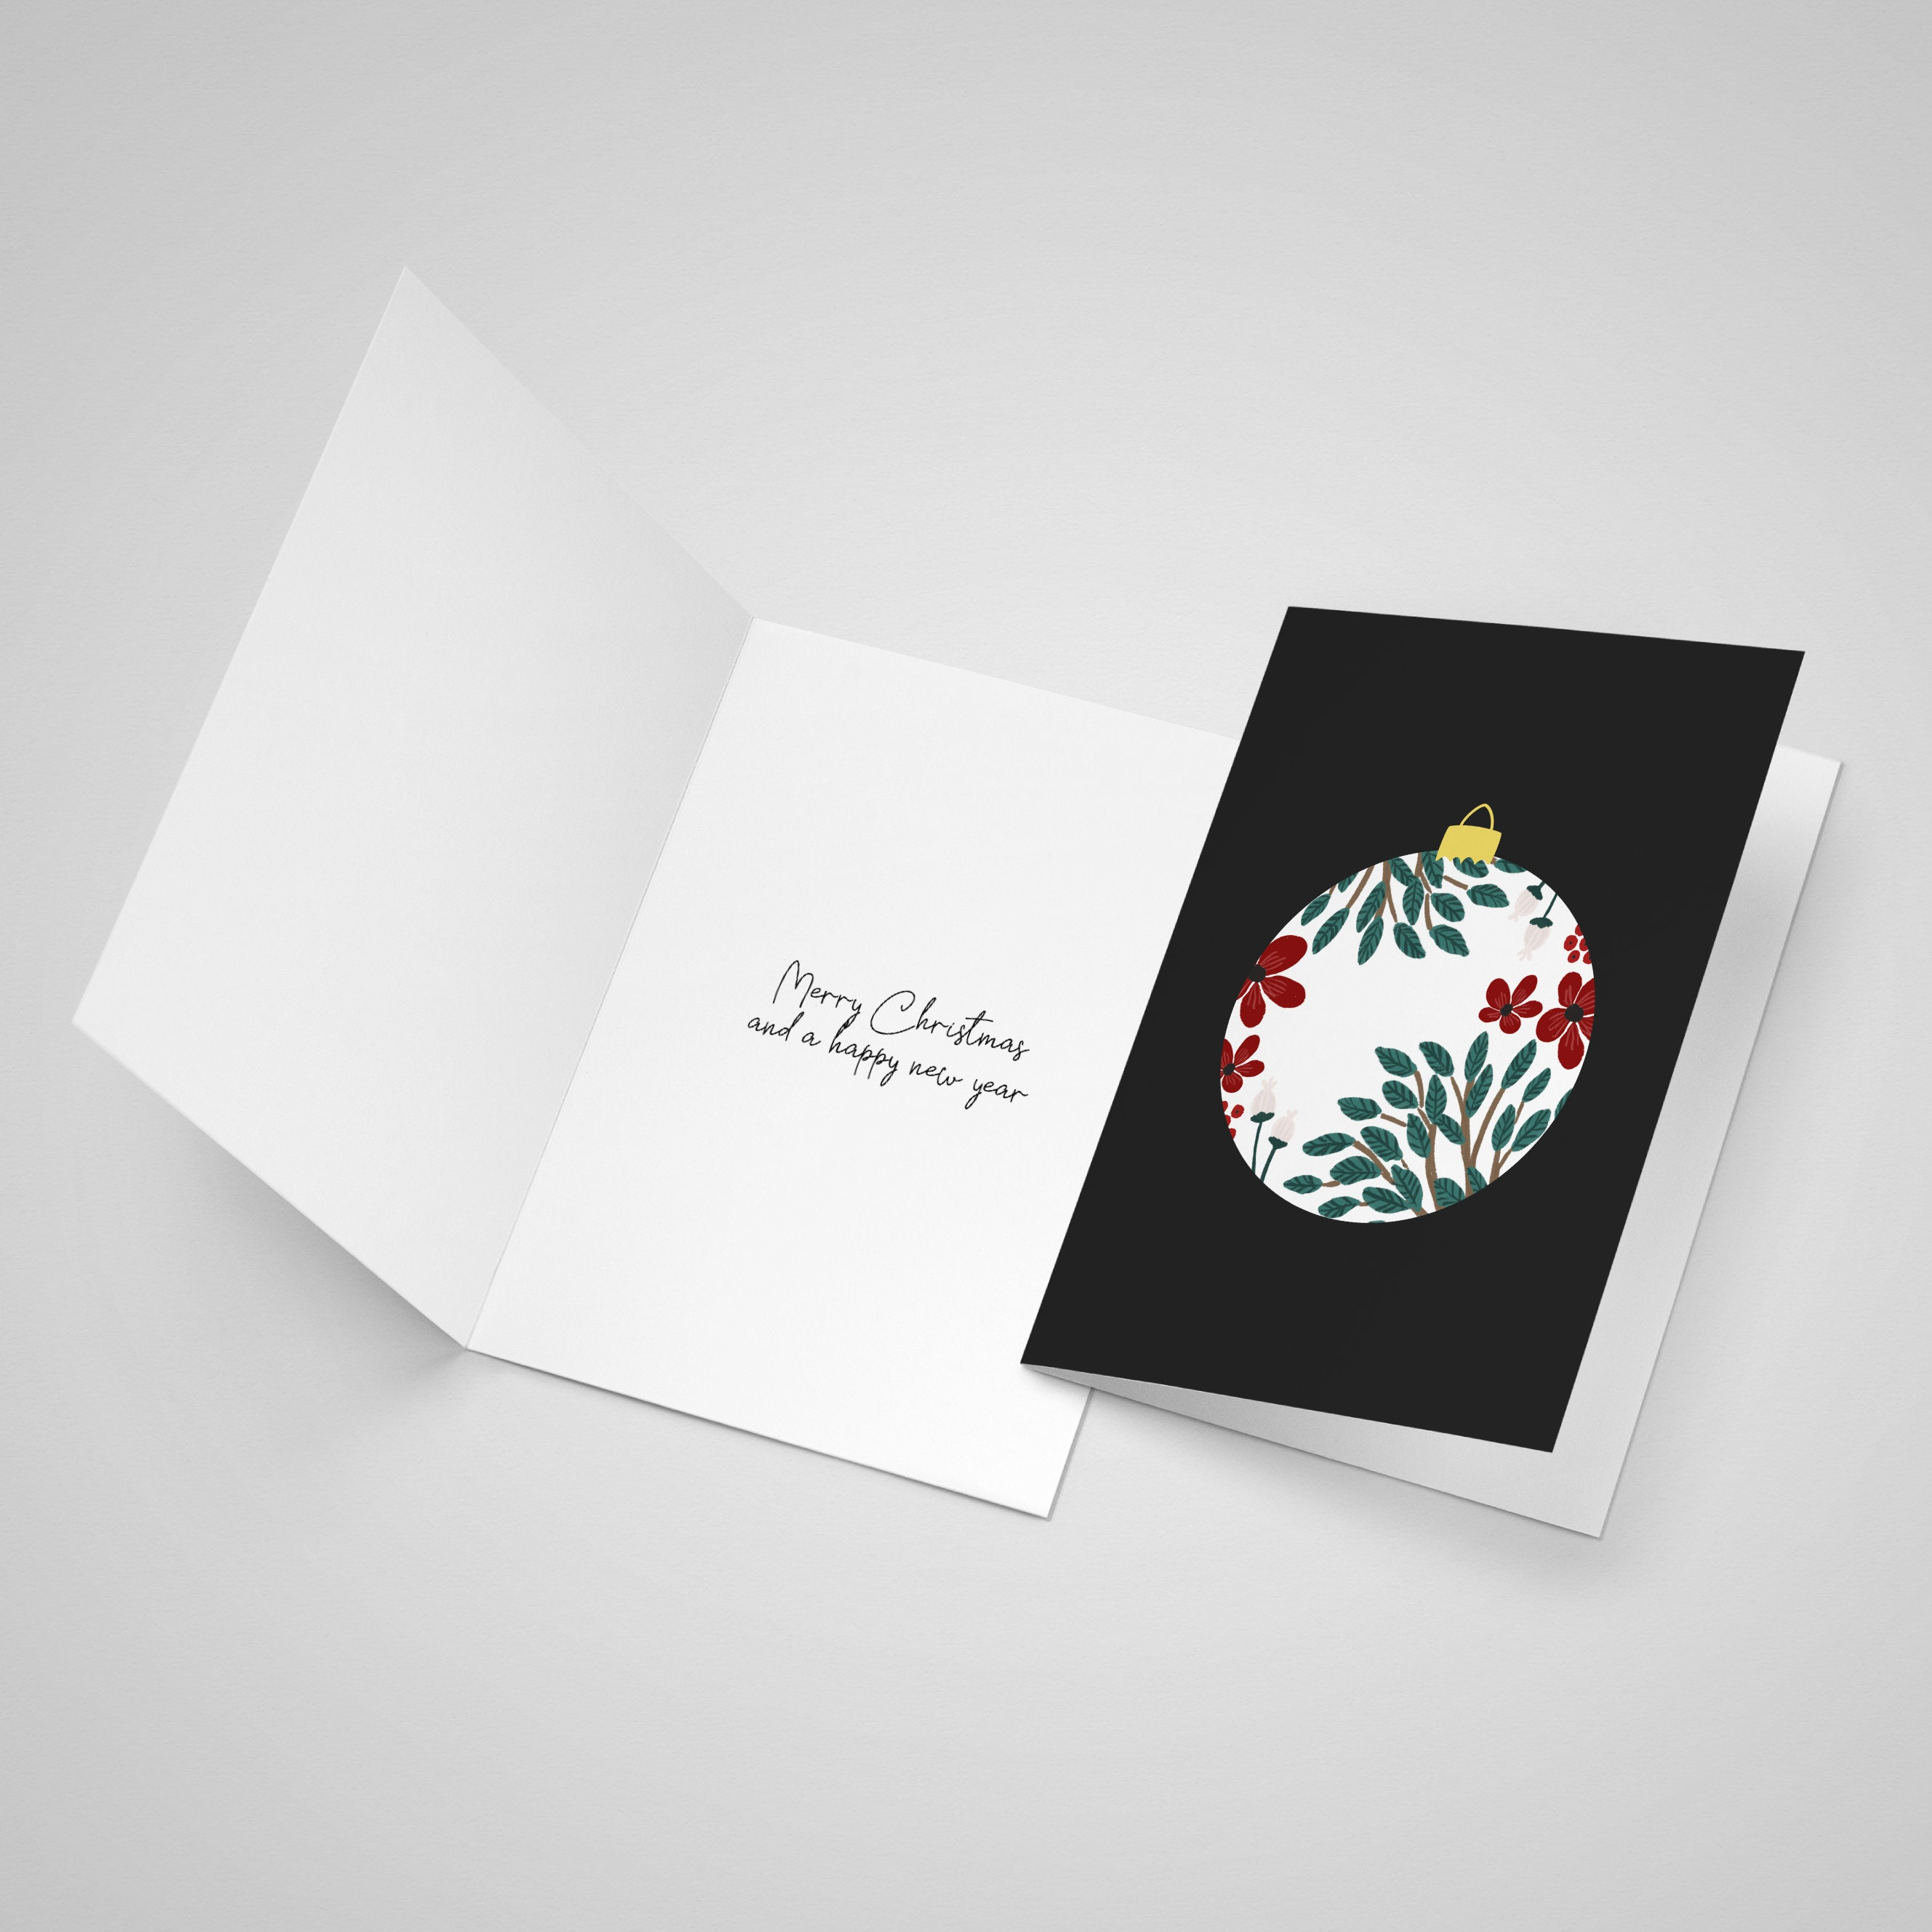 Open card showing that the inside of the card has a festive message printed inside